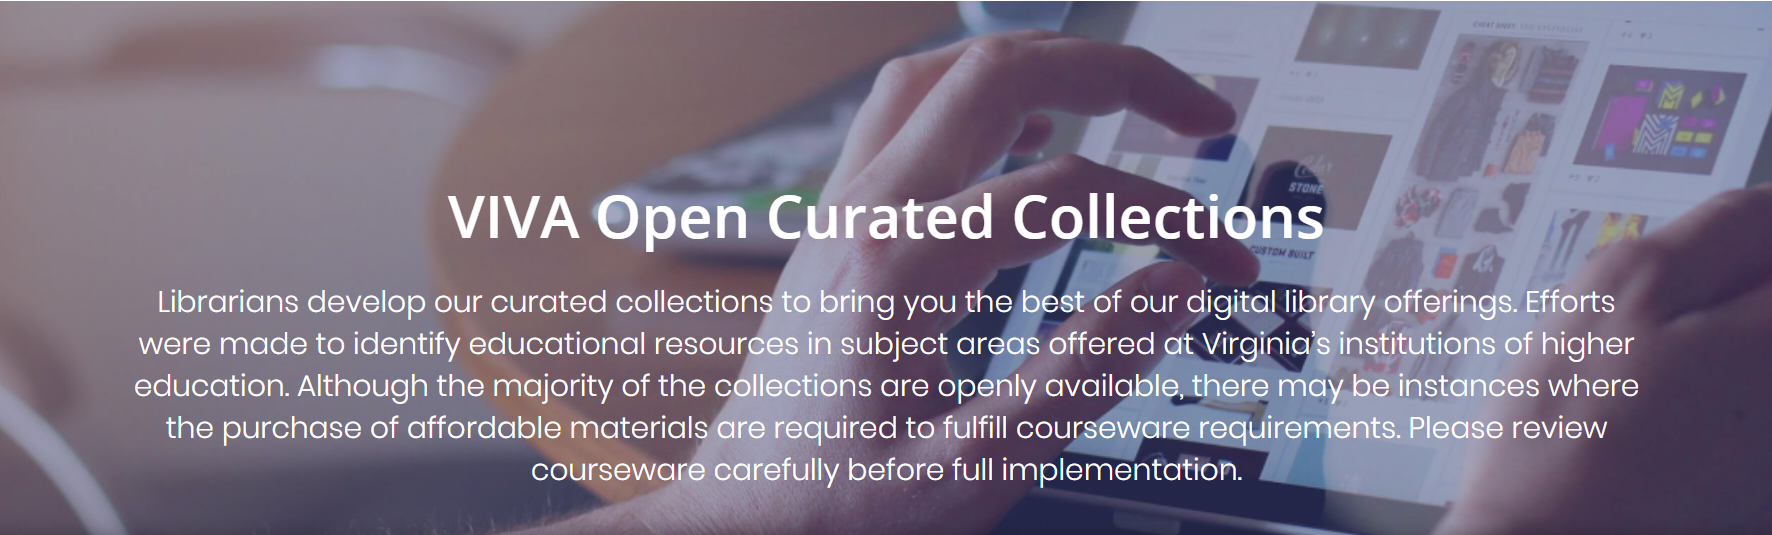 VIVA Open Curated Collections